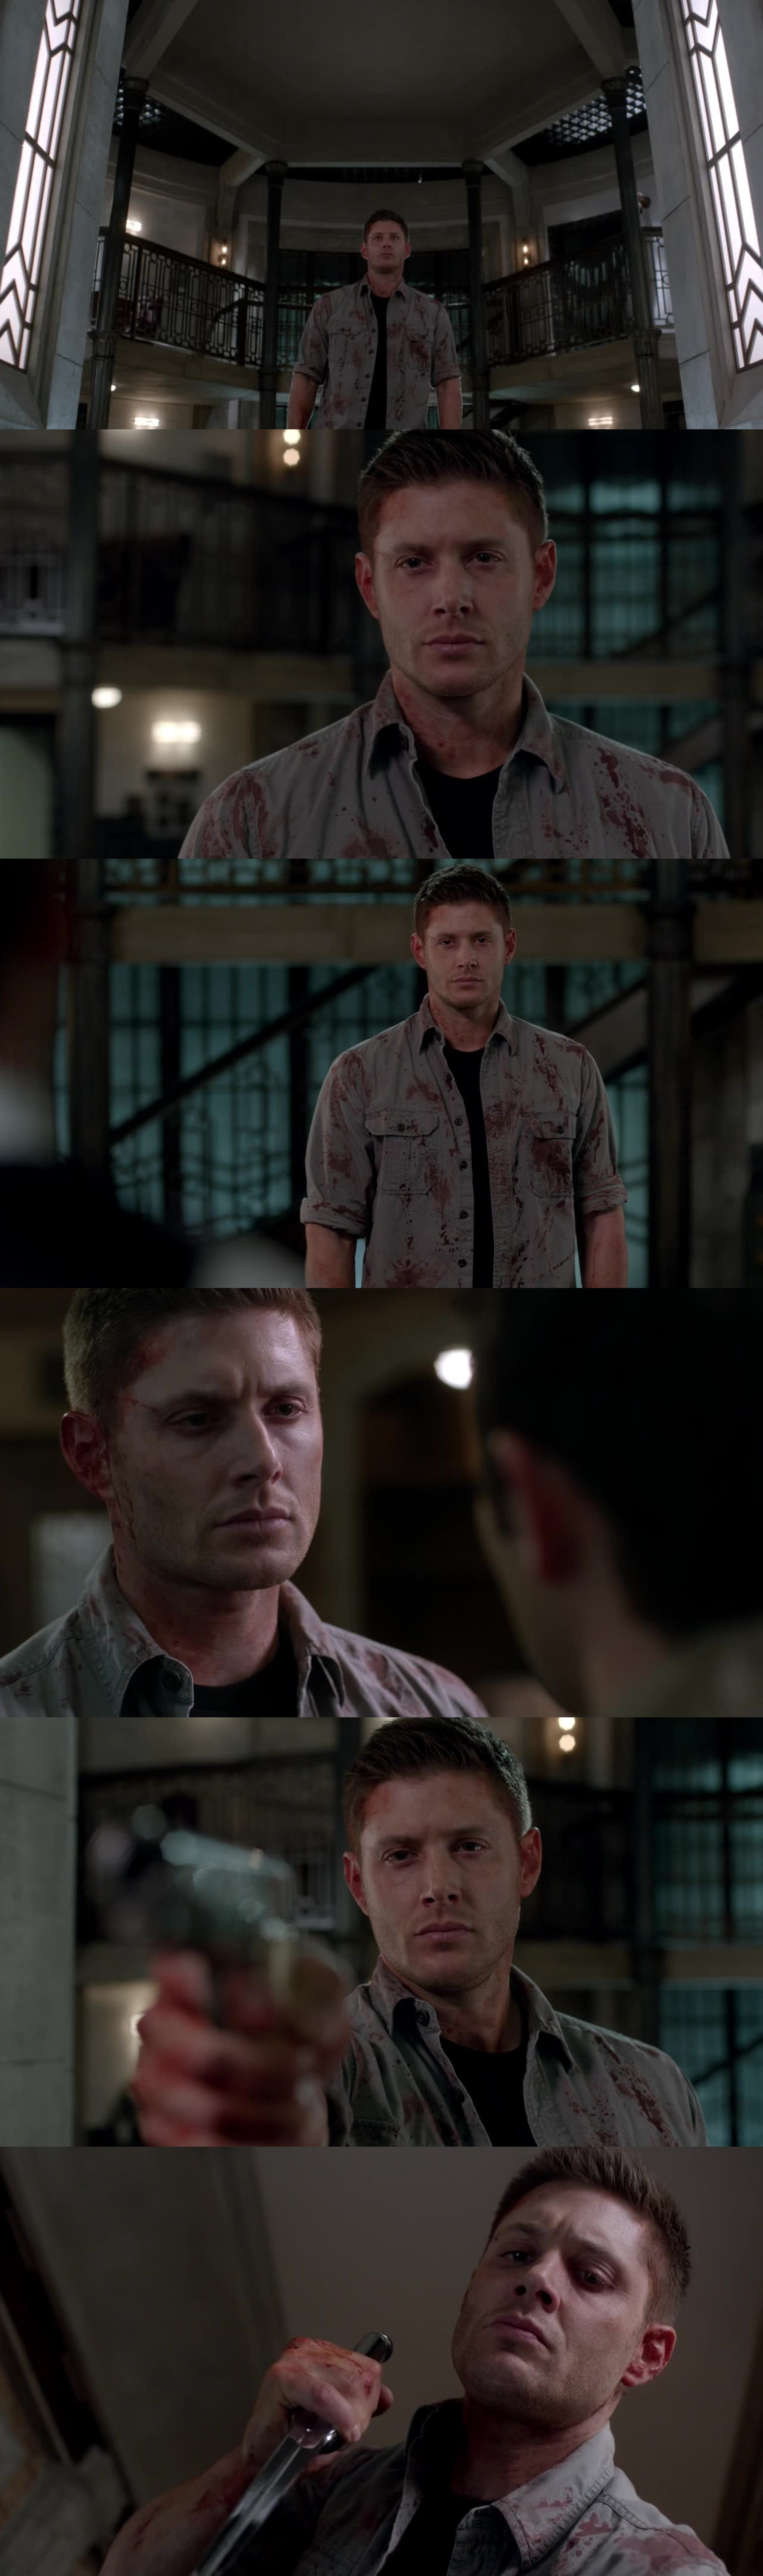 awesome episode! overwhelming! Jensen was terrific!!!! it's always great to have Dark!Dean back in unstoppable-dark-killer mode on!